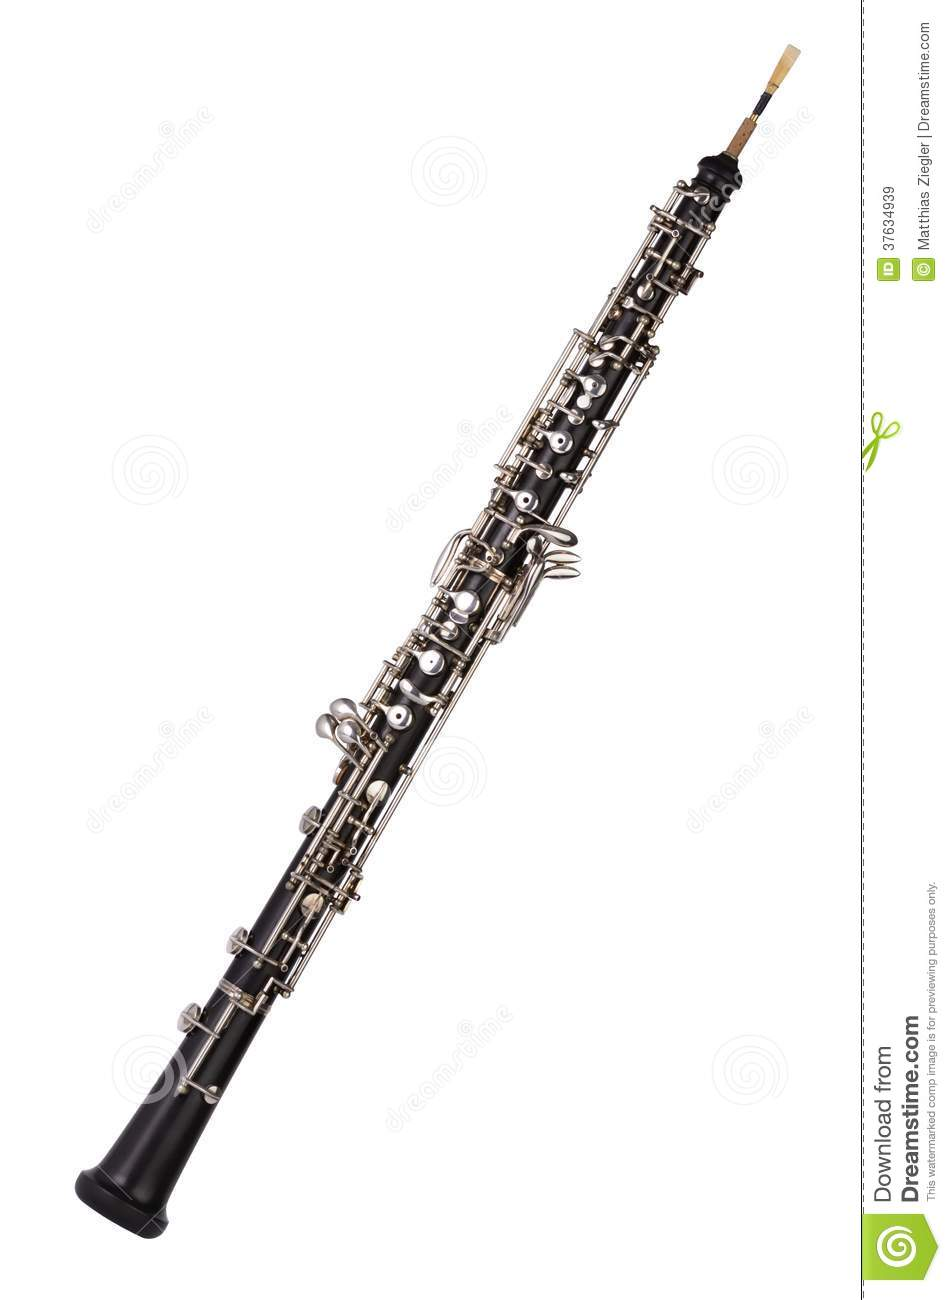 Clipart Oboe Oboe on white background